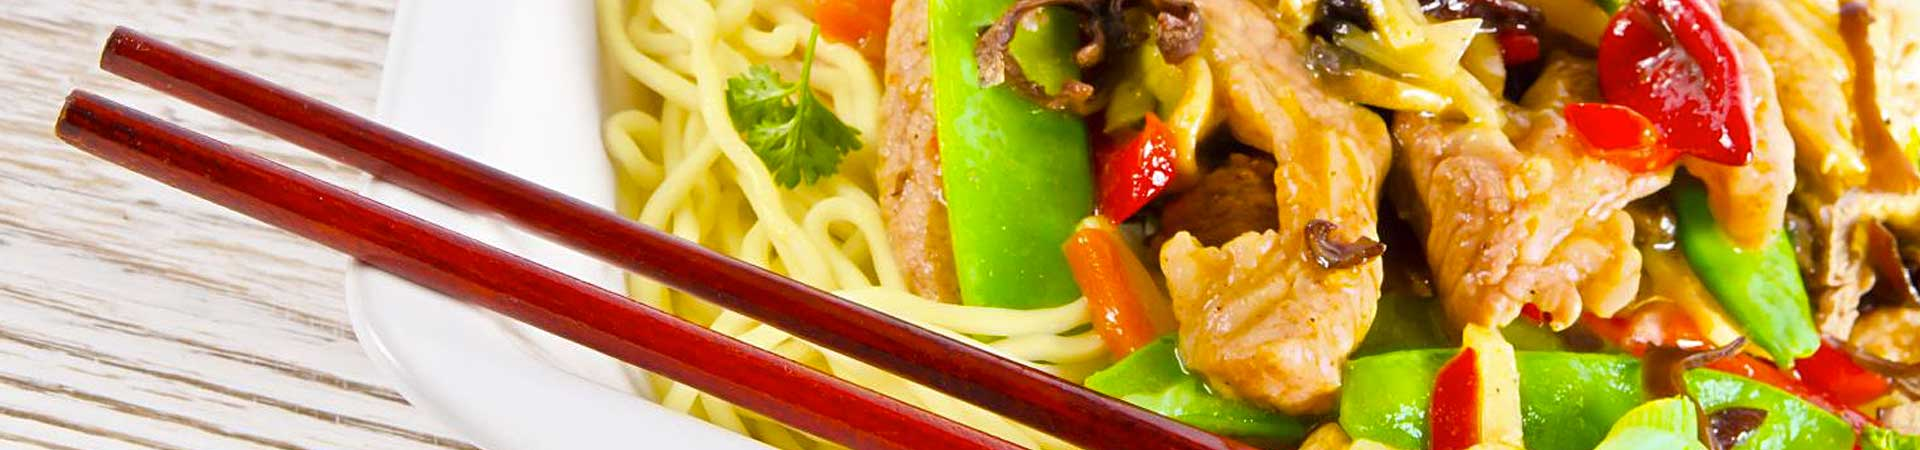 https://www.goodmorningtenerife.com/wp-content/uploads/2018/01/01_taste-chinese-food-1920x450-good-morning-tenerife.jpg